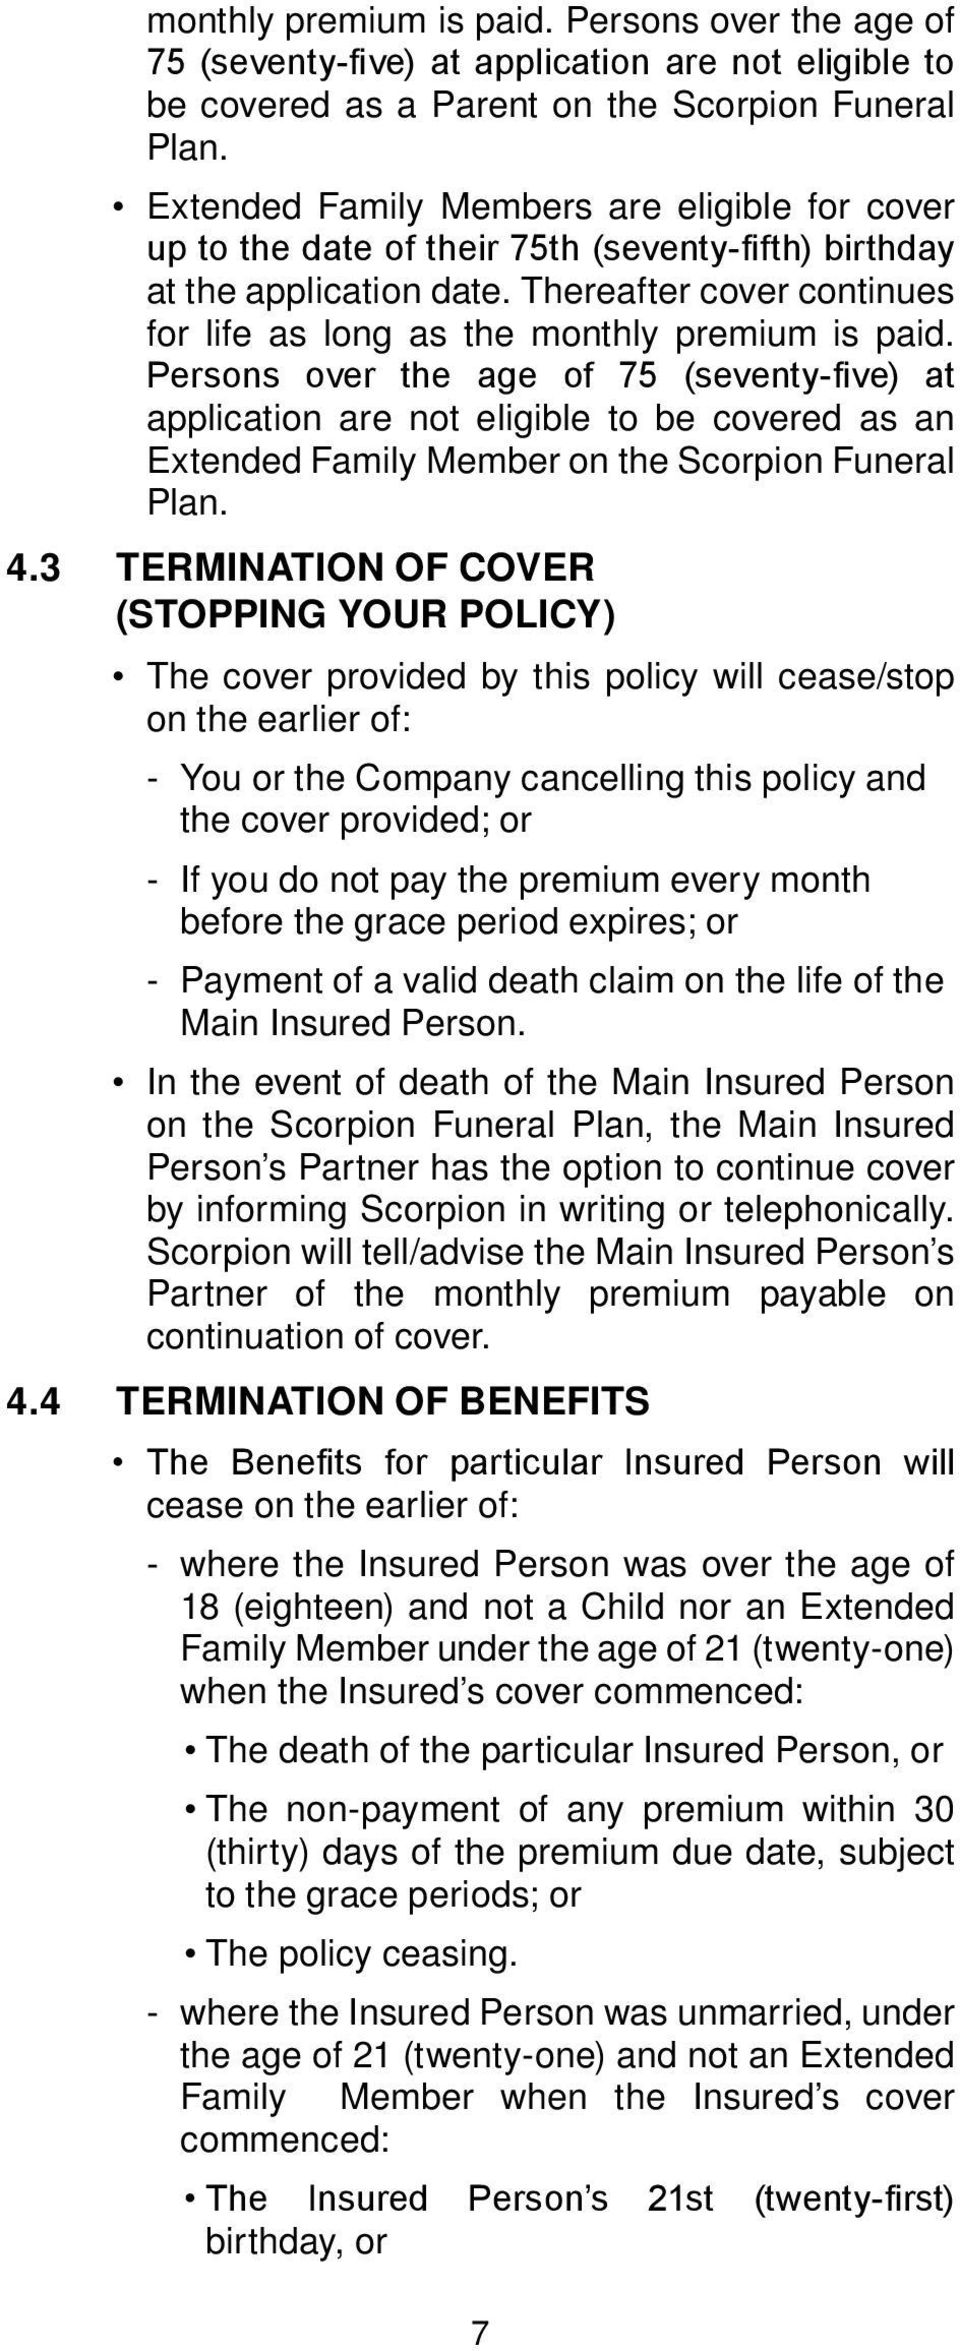 Thereafter cover continues for life as long as the monthly premium is paid.